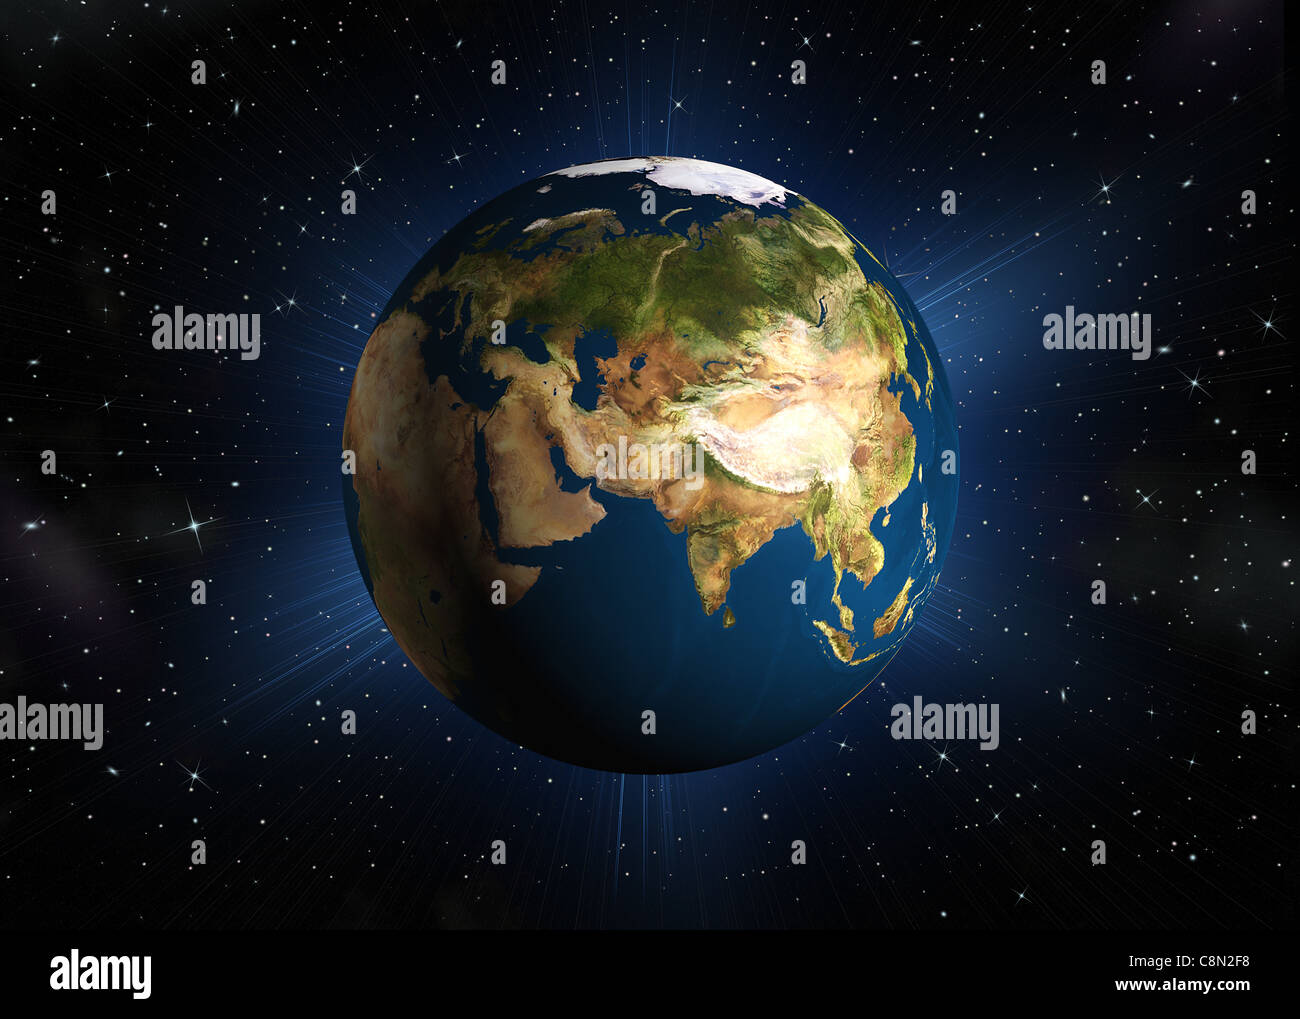 The planet earth. Eurasia.High-quality 3d rendering mother Earth with back illumination. Space with stars - Stock Image